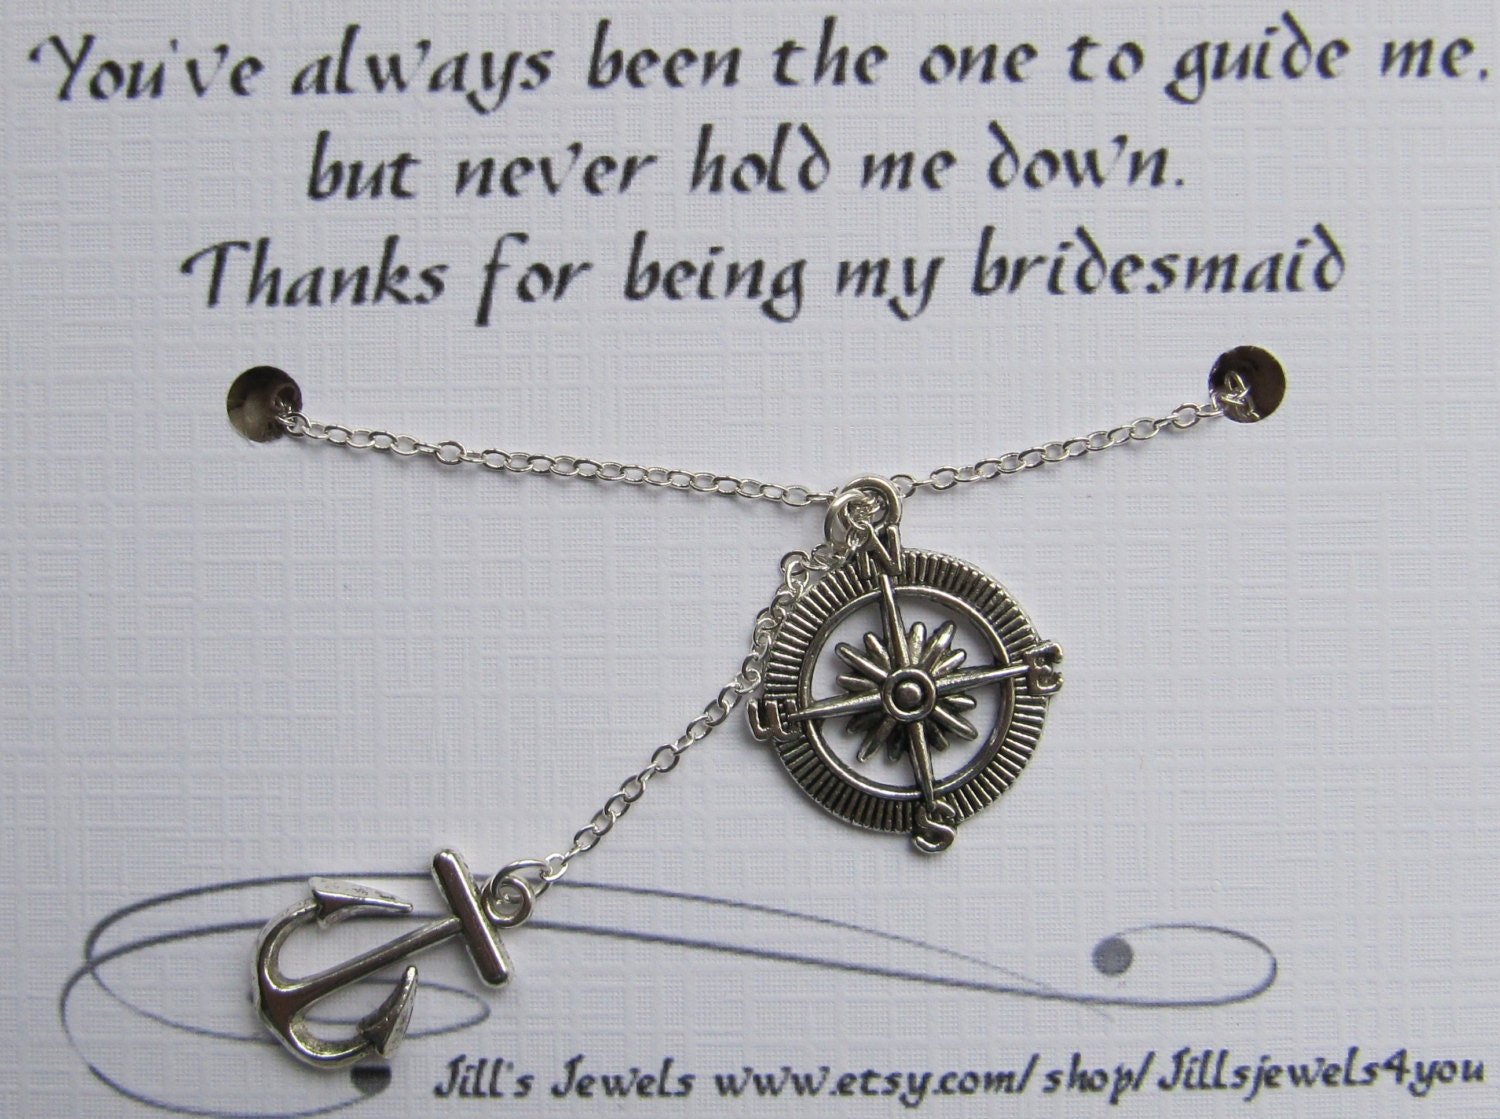 Quotes About Pearls And Friendship Compass And Anchor Charm Necklace With Friendship Quote